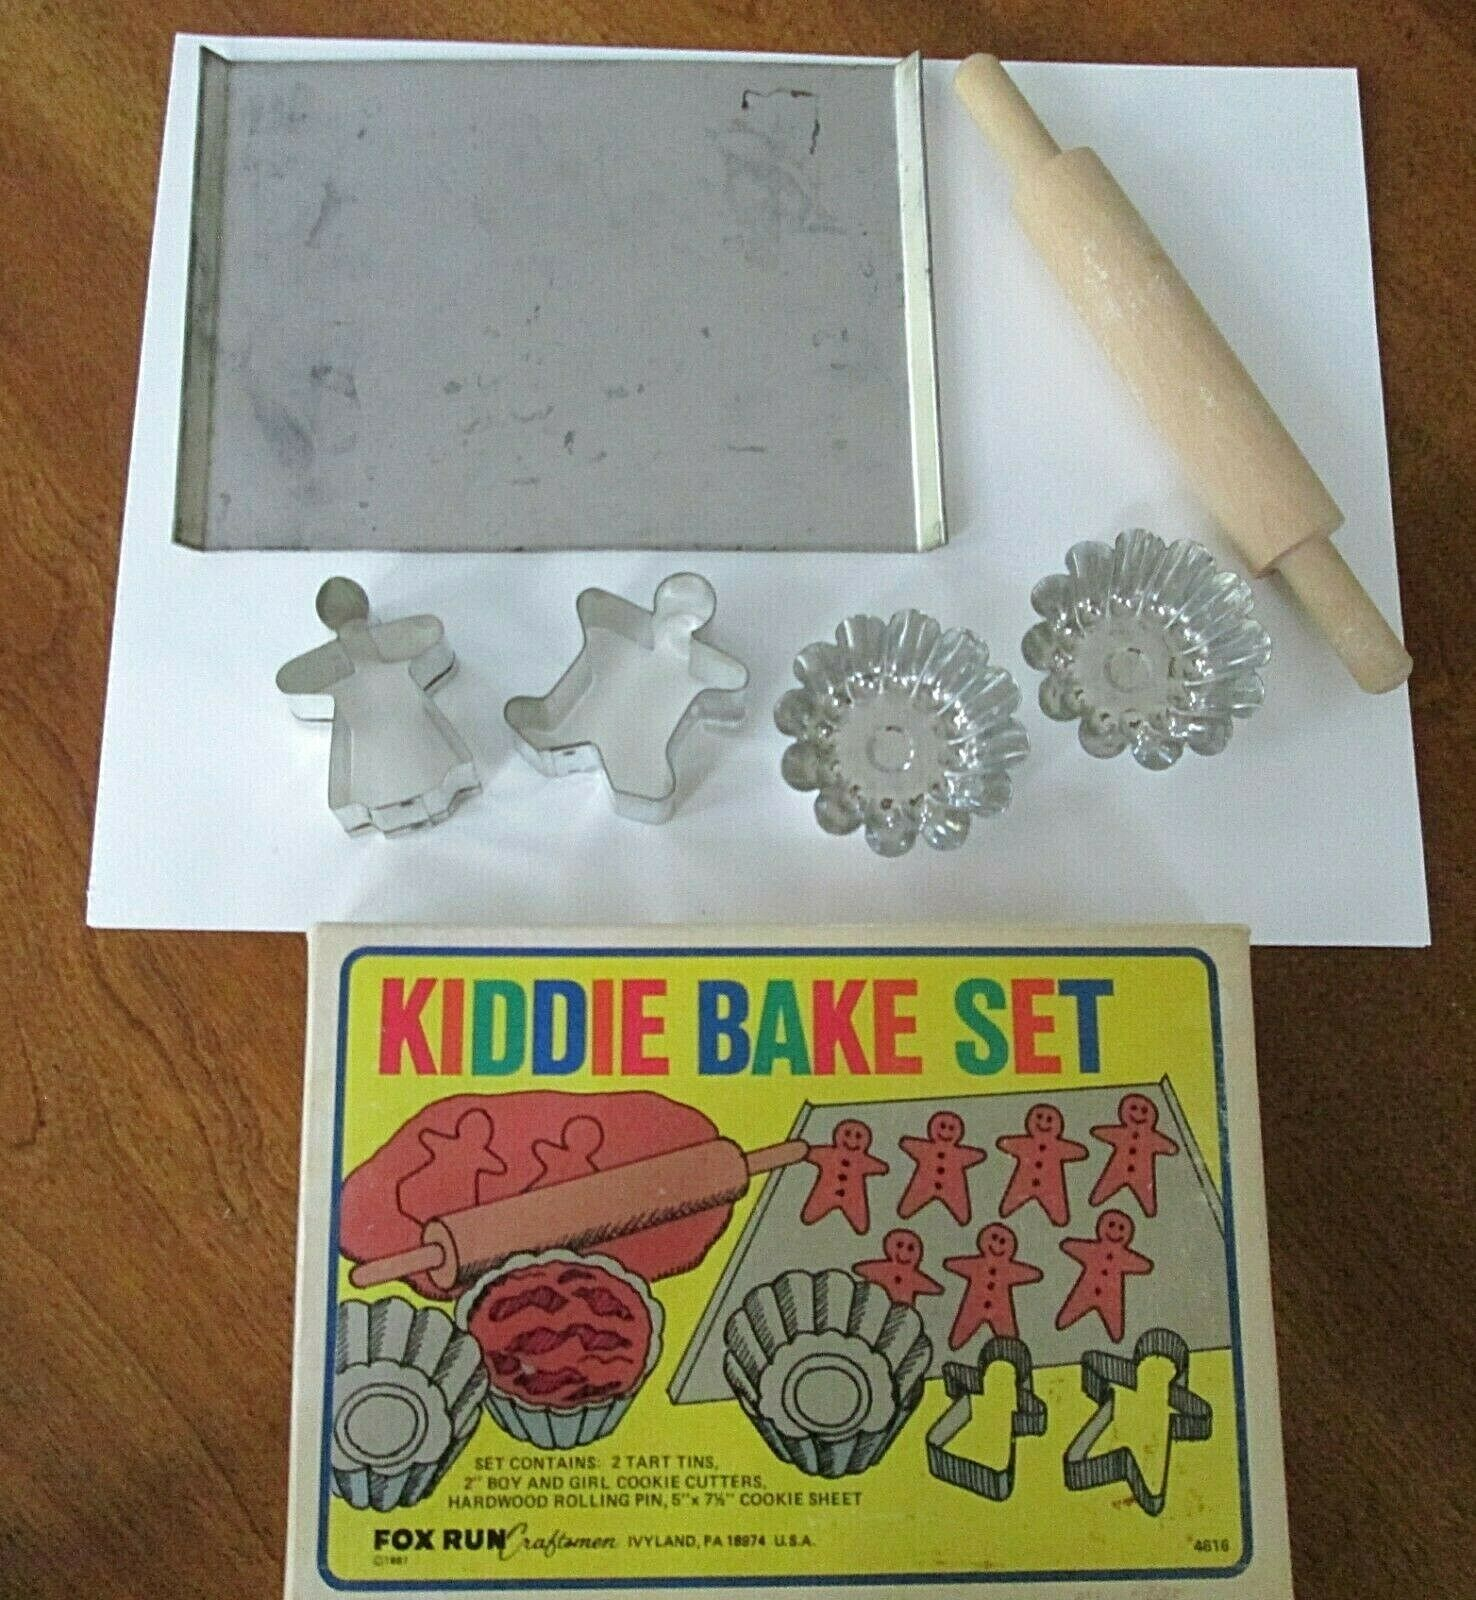 Vtg Fox Run Kiddie Bake Set Wooden Rolling Pin Cookie Sheet